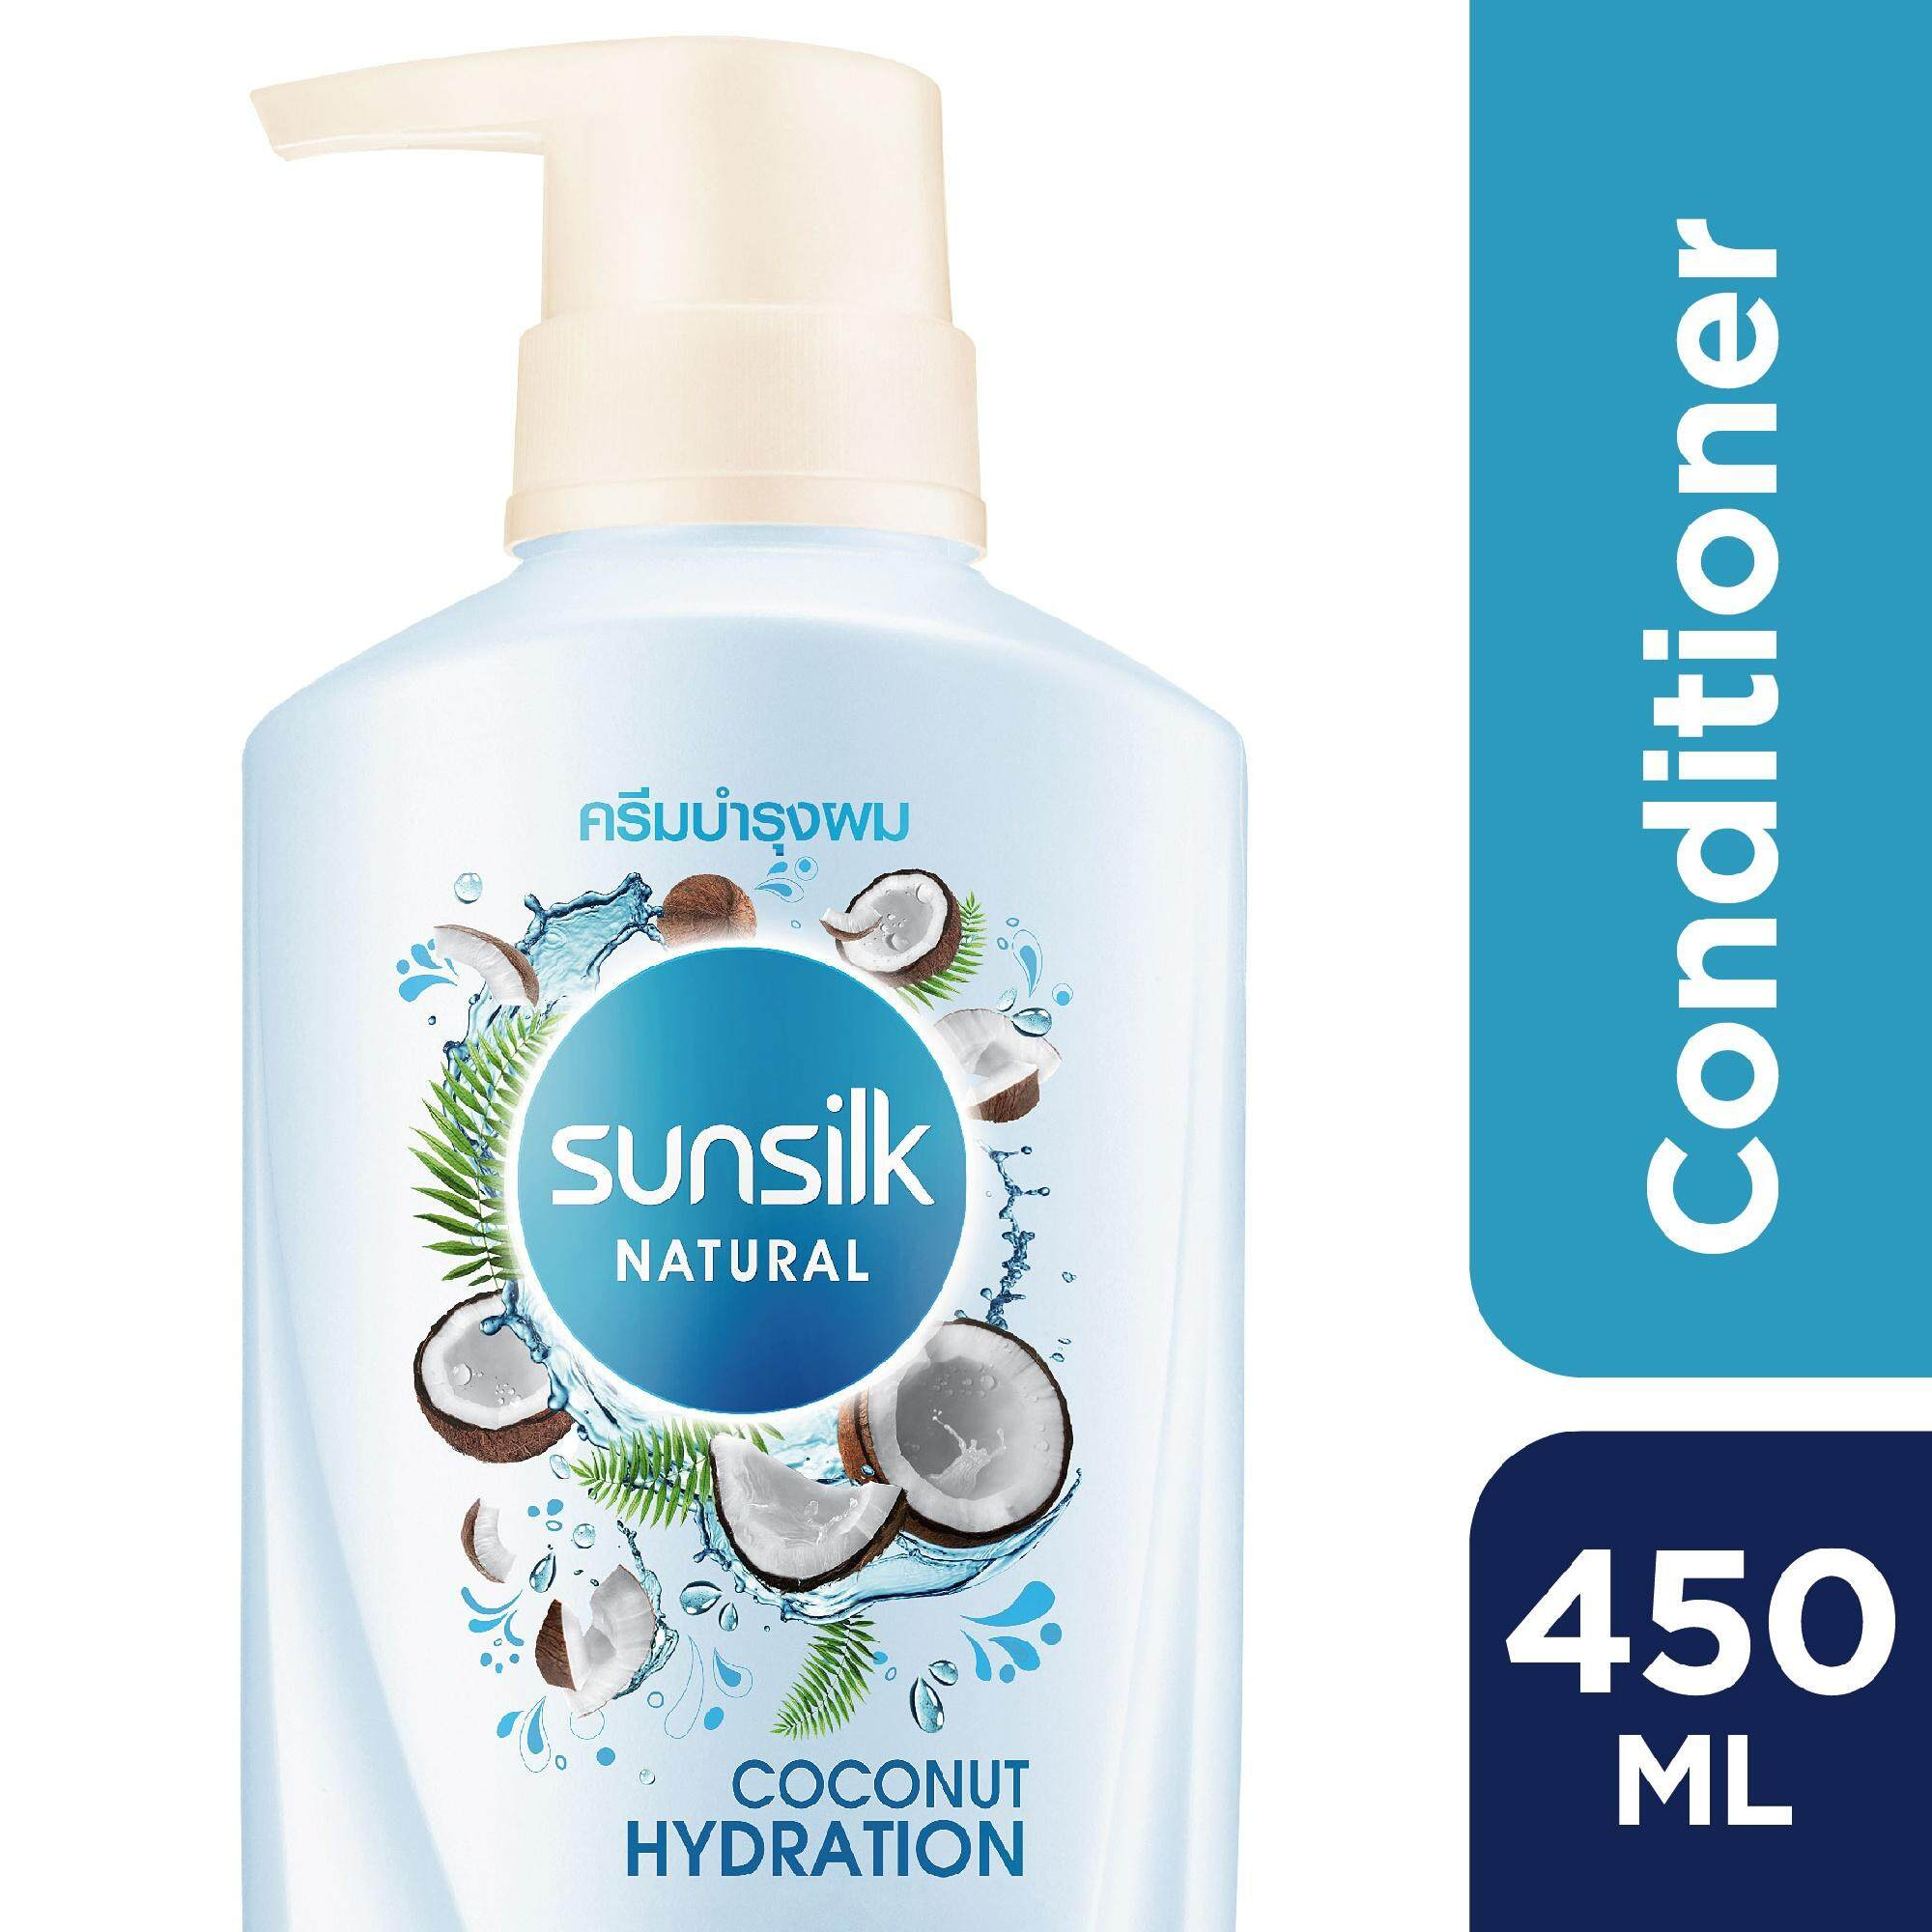 Sunsilk Natural Coconut Hydration Conditioner 450 Ml By Unilever Official Store.